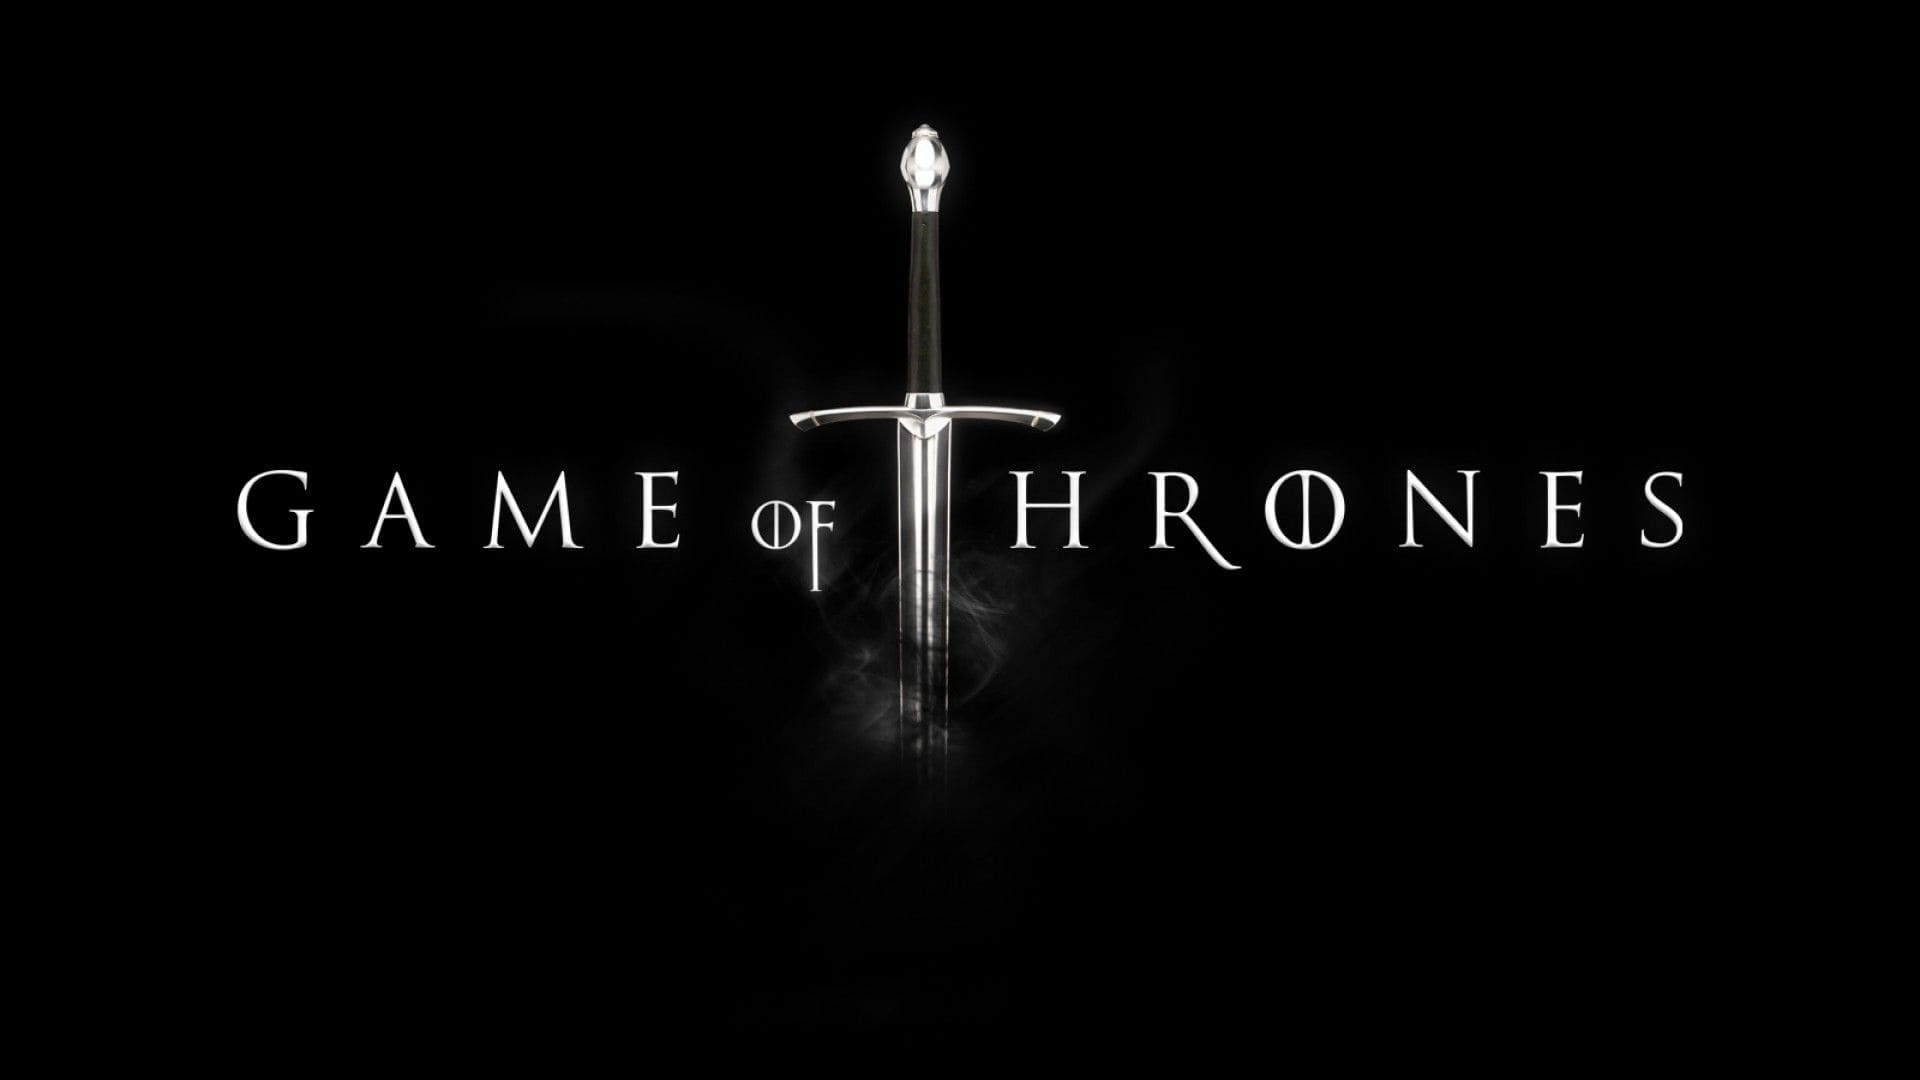 Game of thrones background 1920x1080